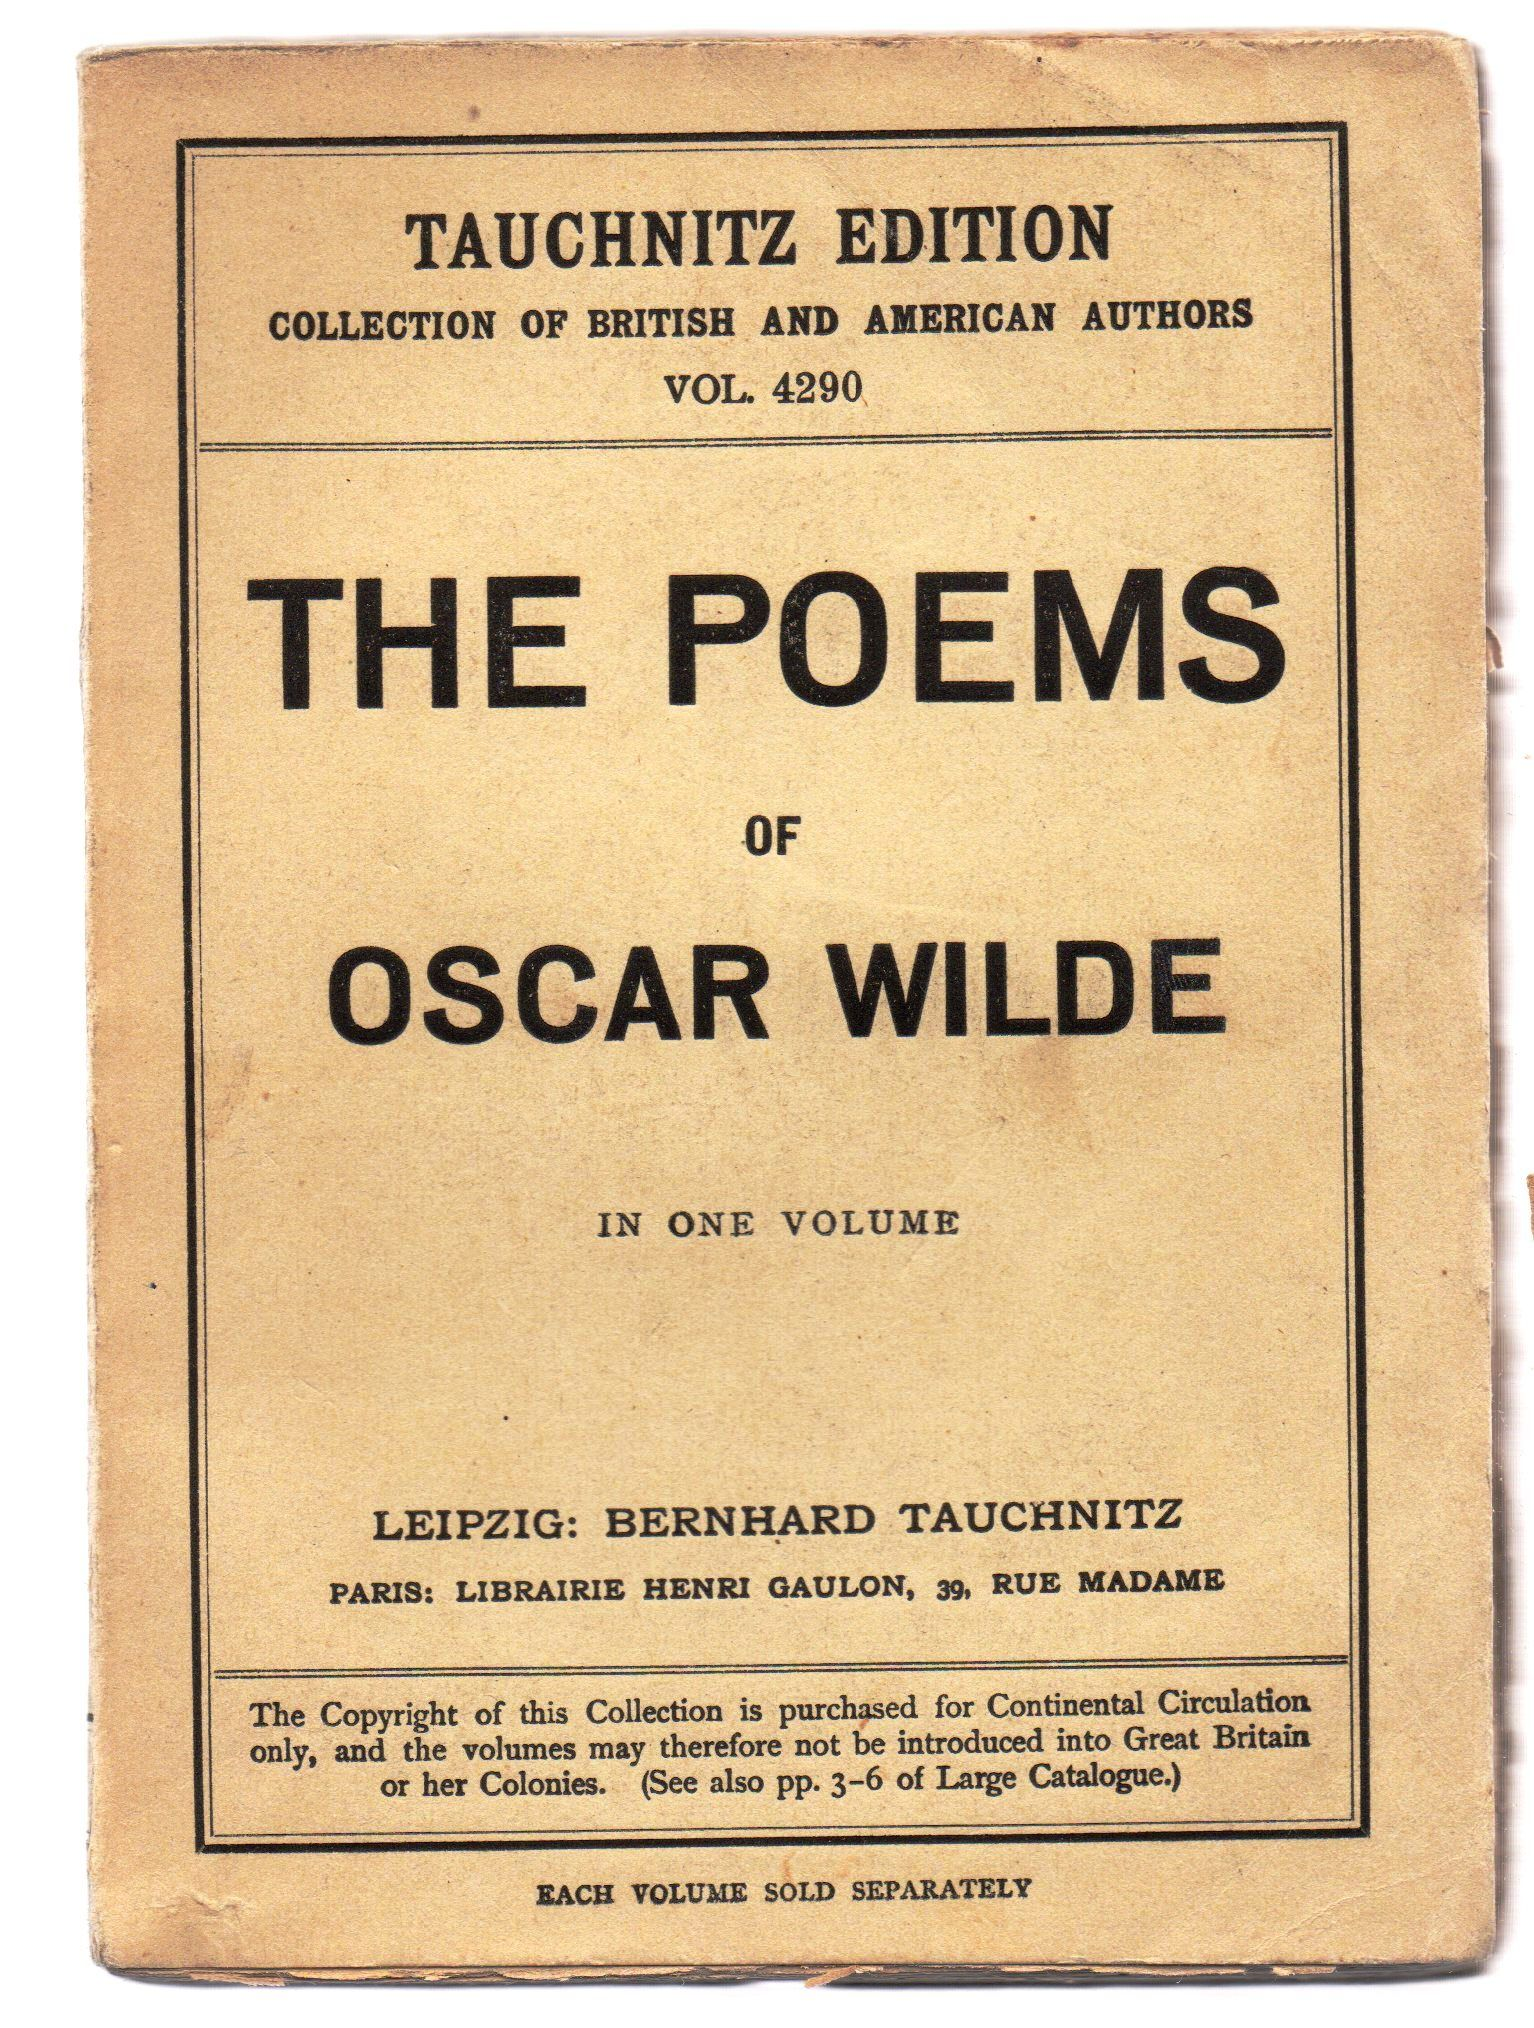 The Poems Of Oscar Wilde By Oscar Wilde Paperback Copyright Edition Title Page States 1911 While Li From Attic Books And Biblioconz